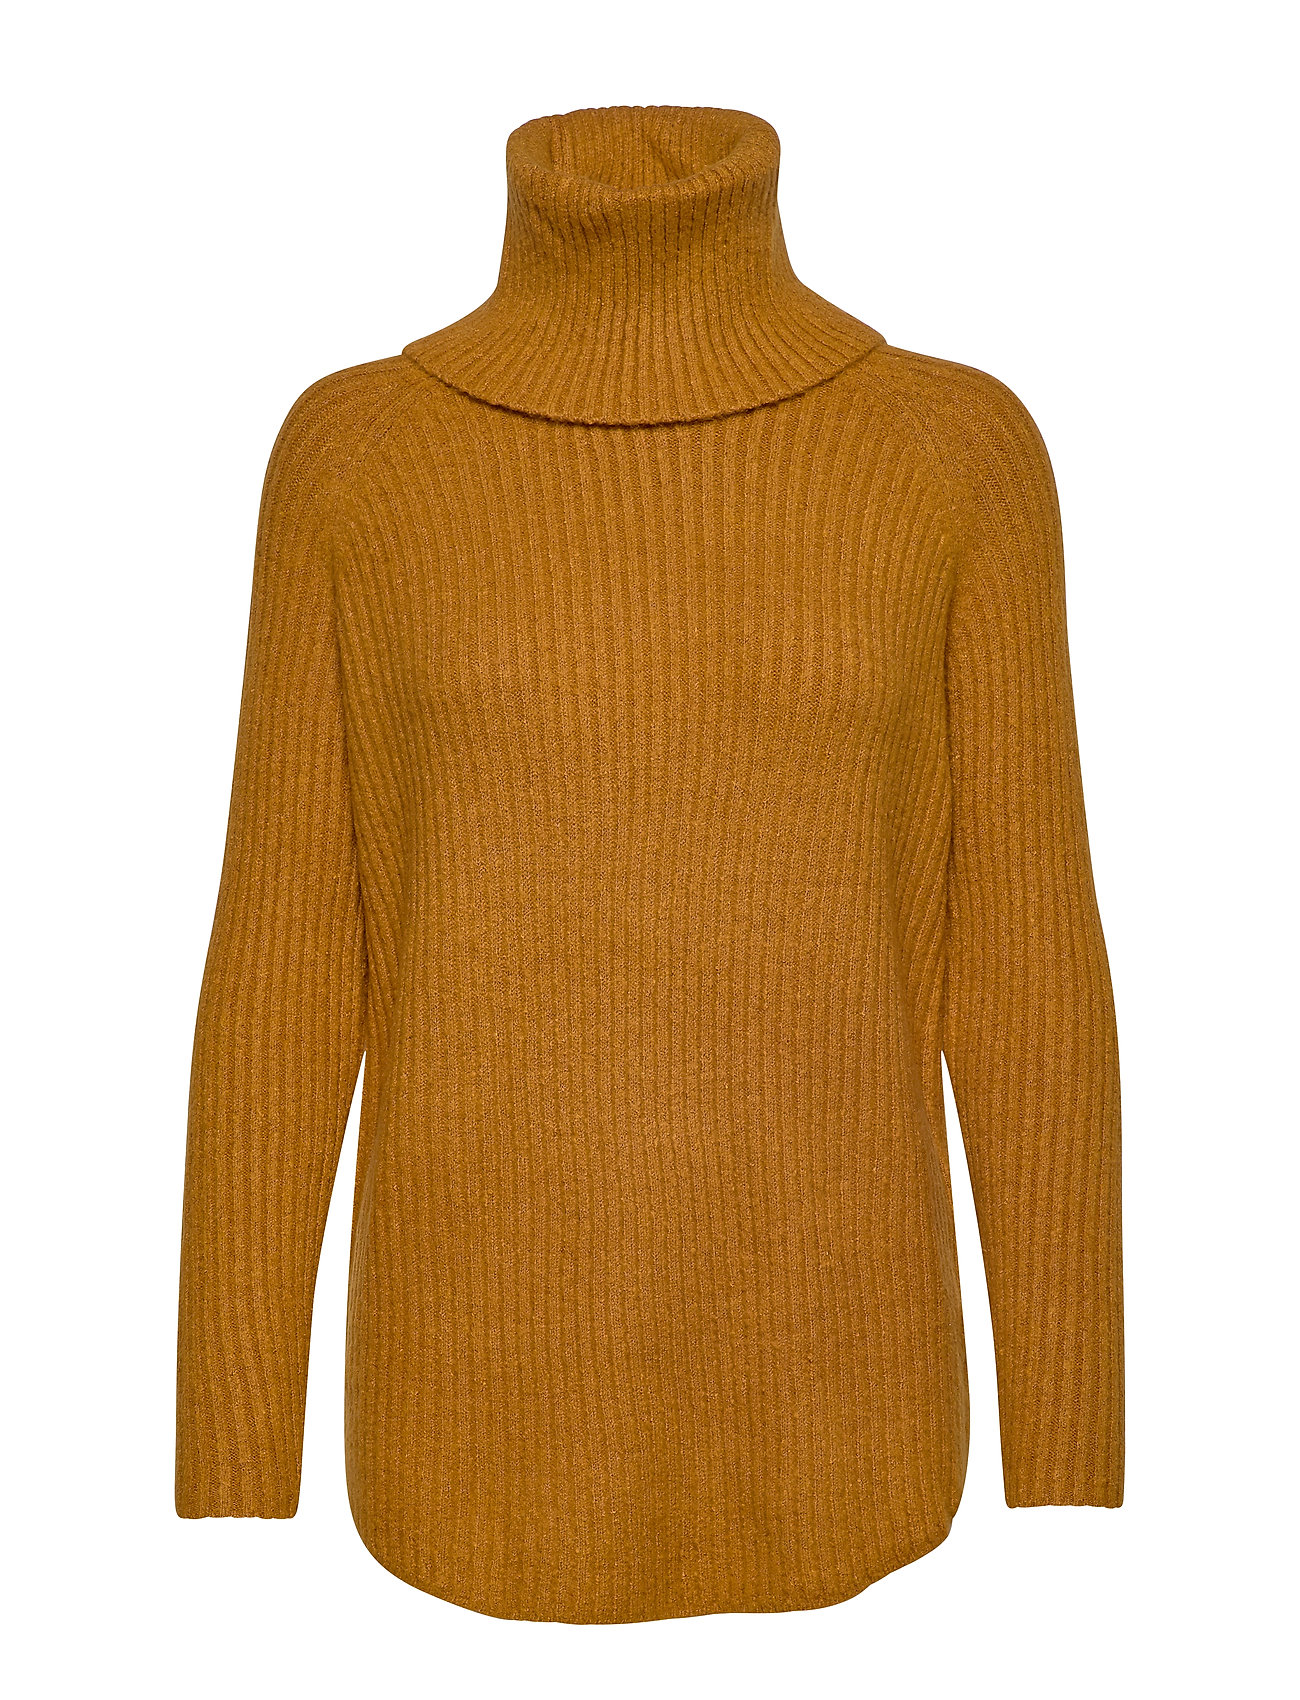 b.young BYNORA TUNIC - - GOLDEN OAK